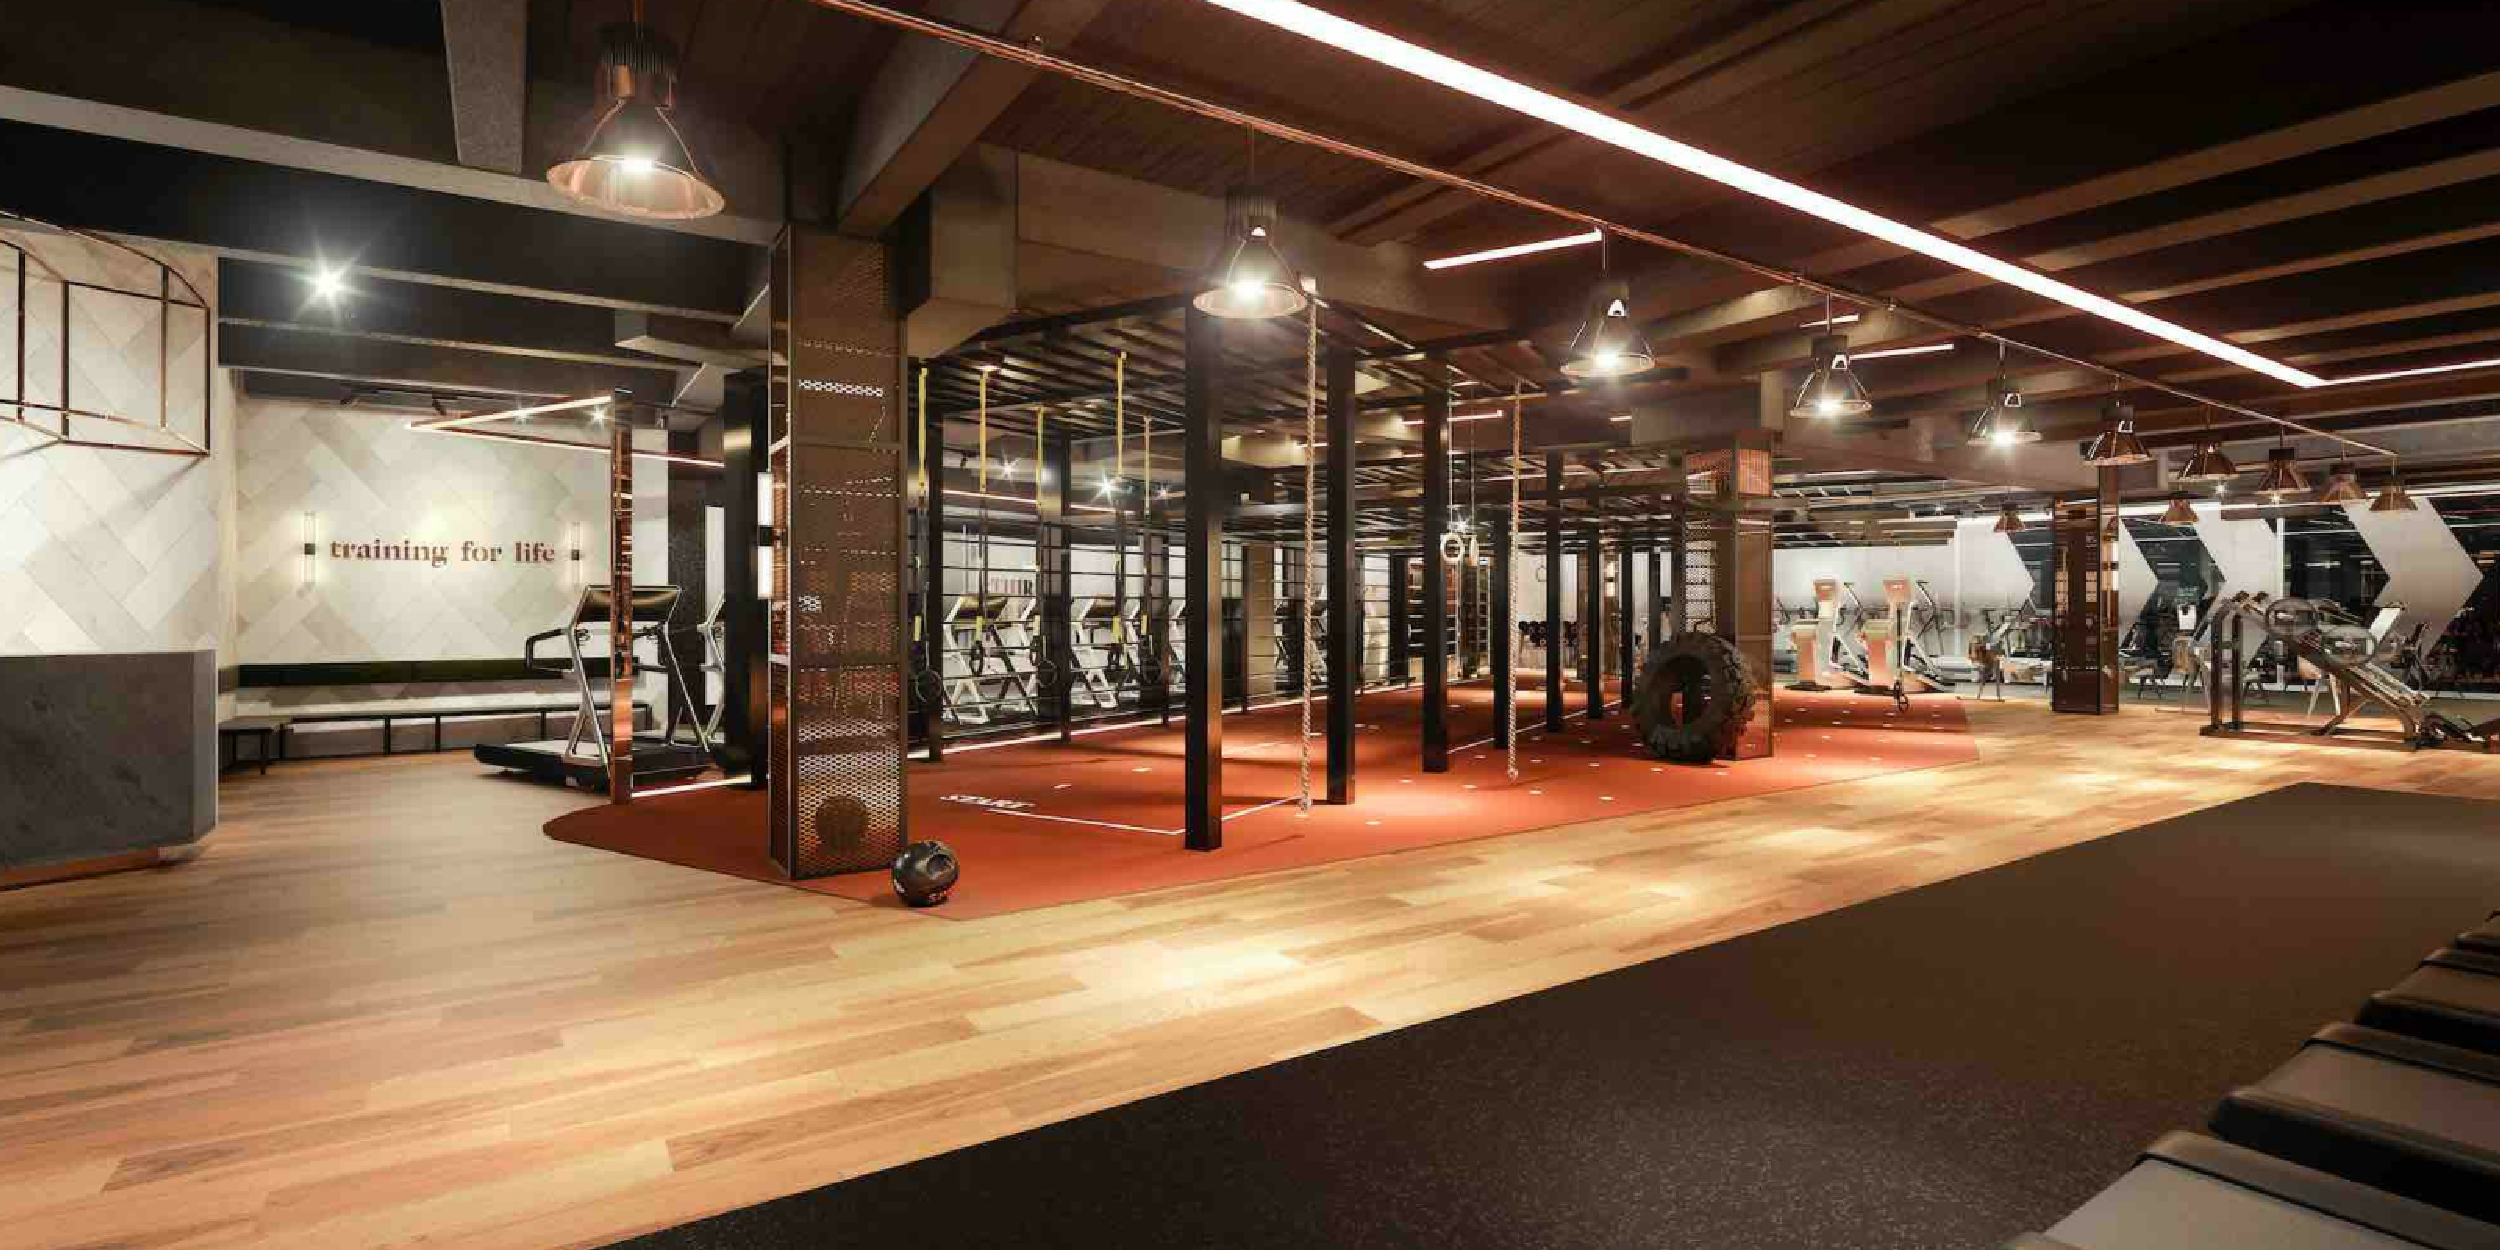 Hotel gyms in london worth a visit